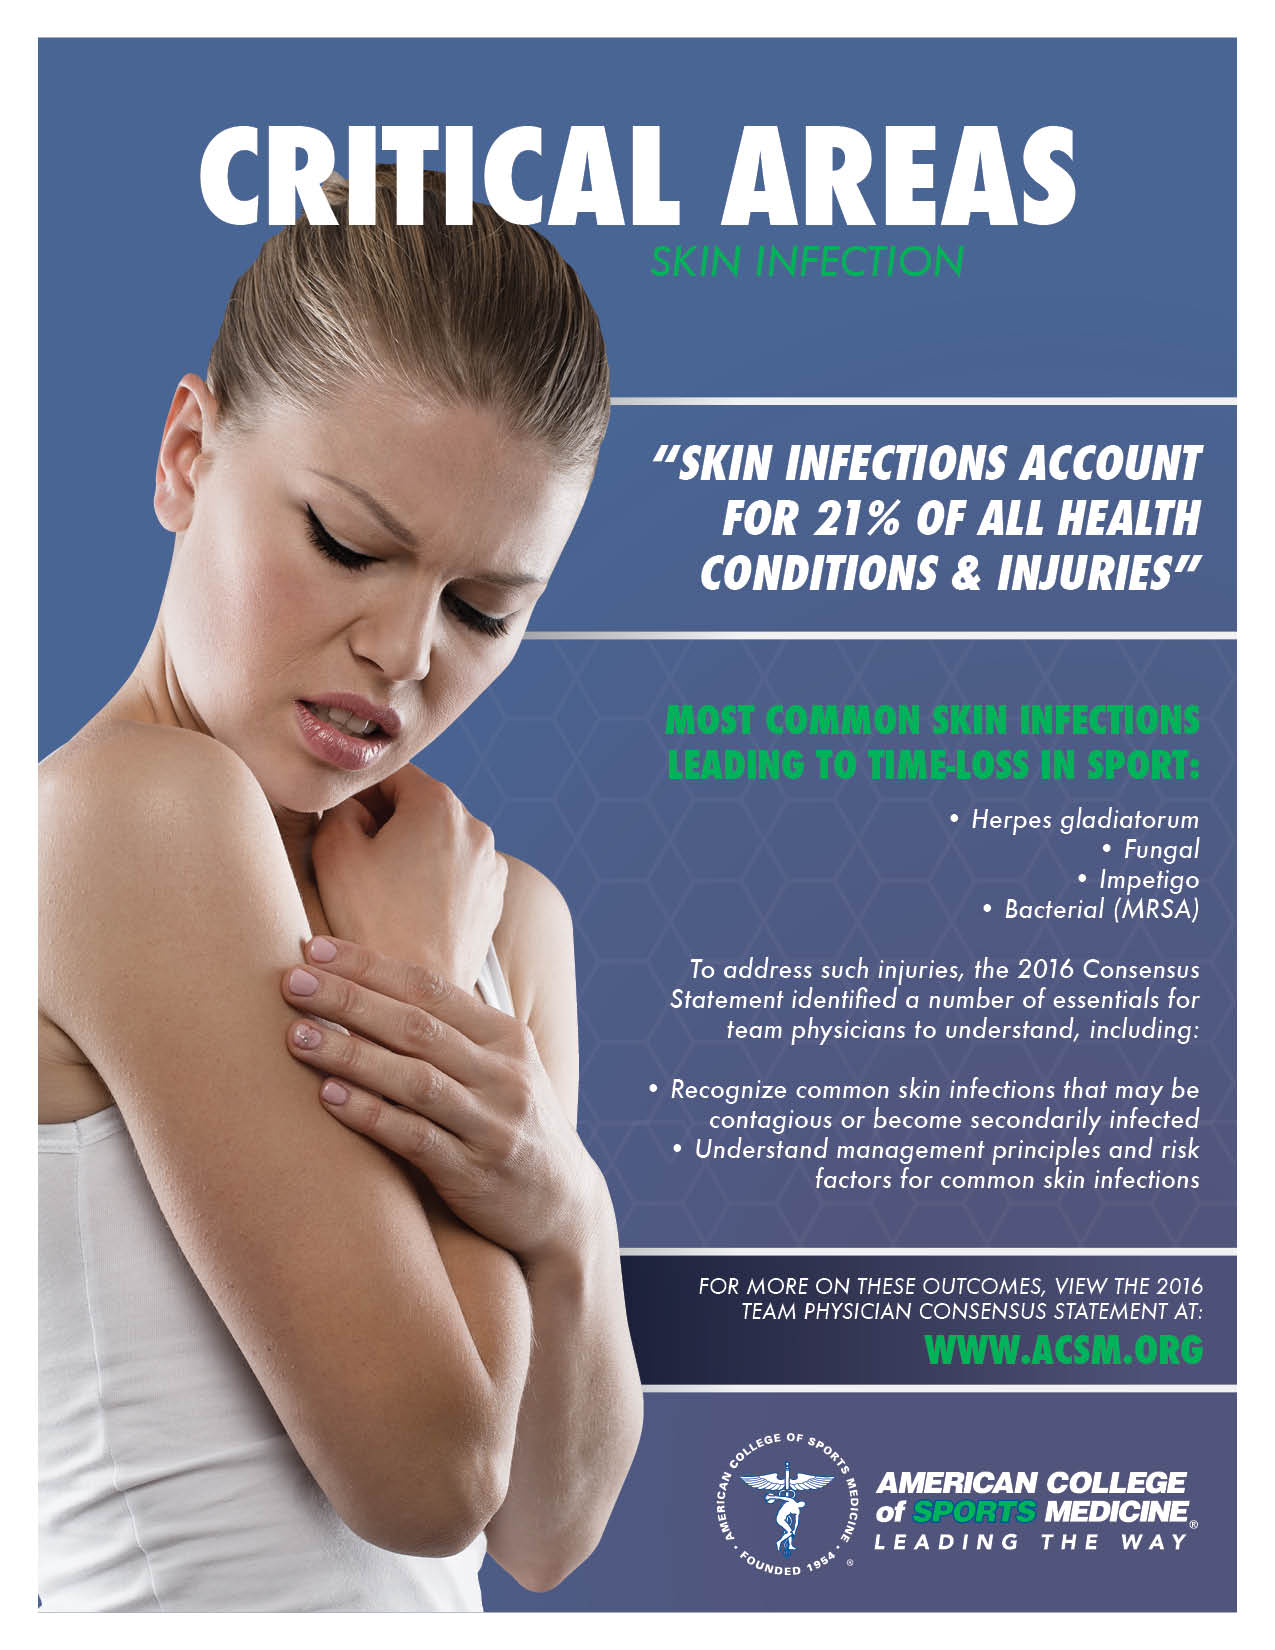 ACSM - CRITICAL AREAS - INFOGRAPHIC